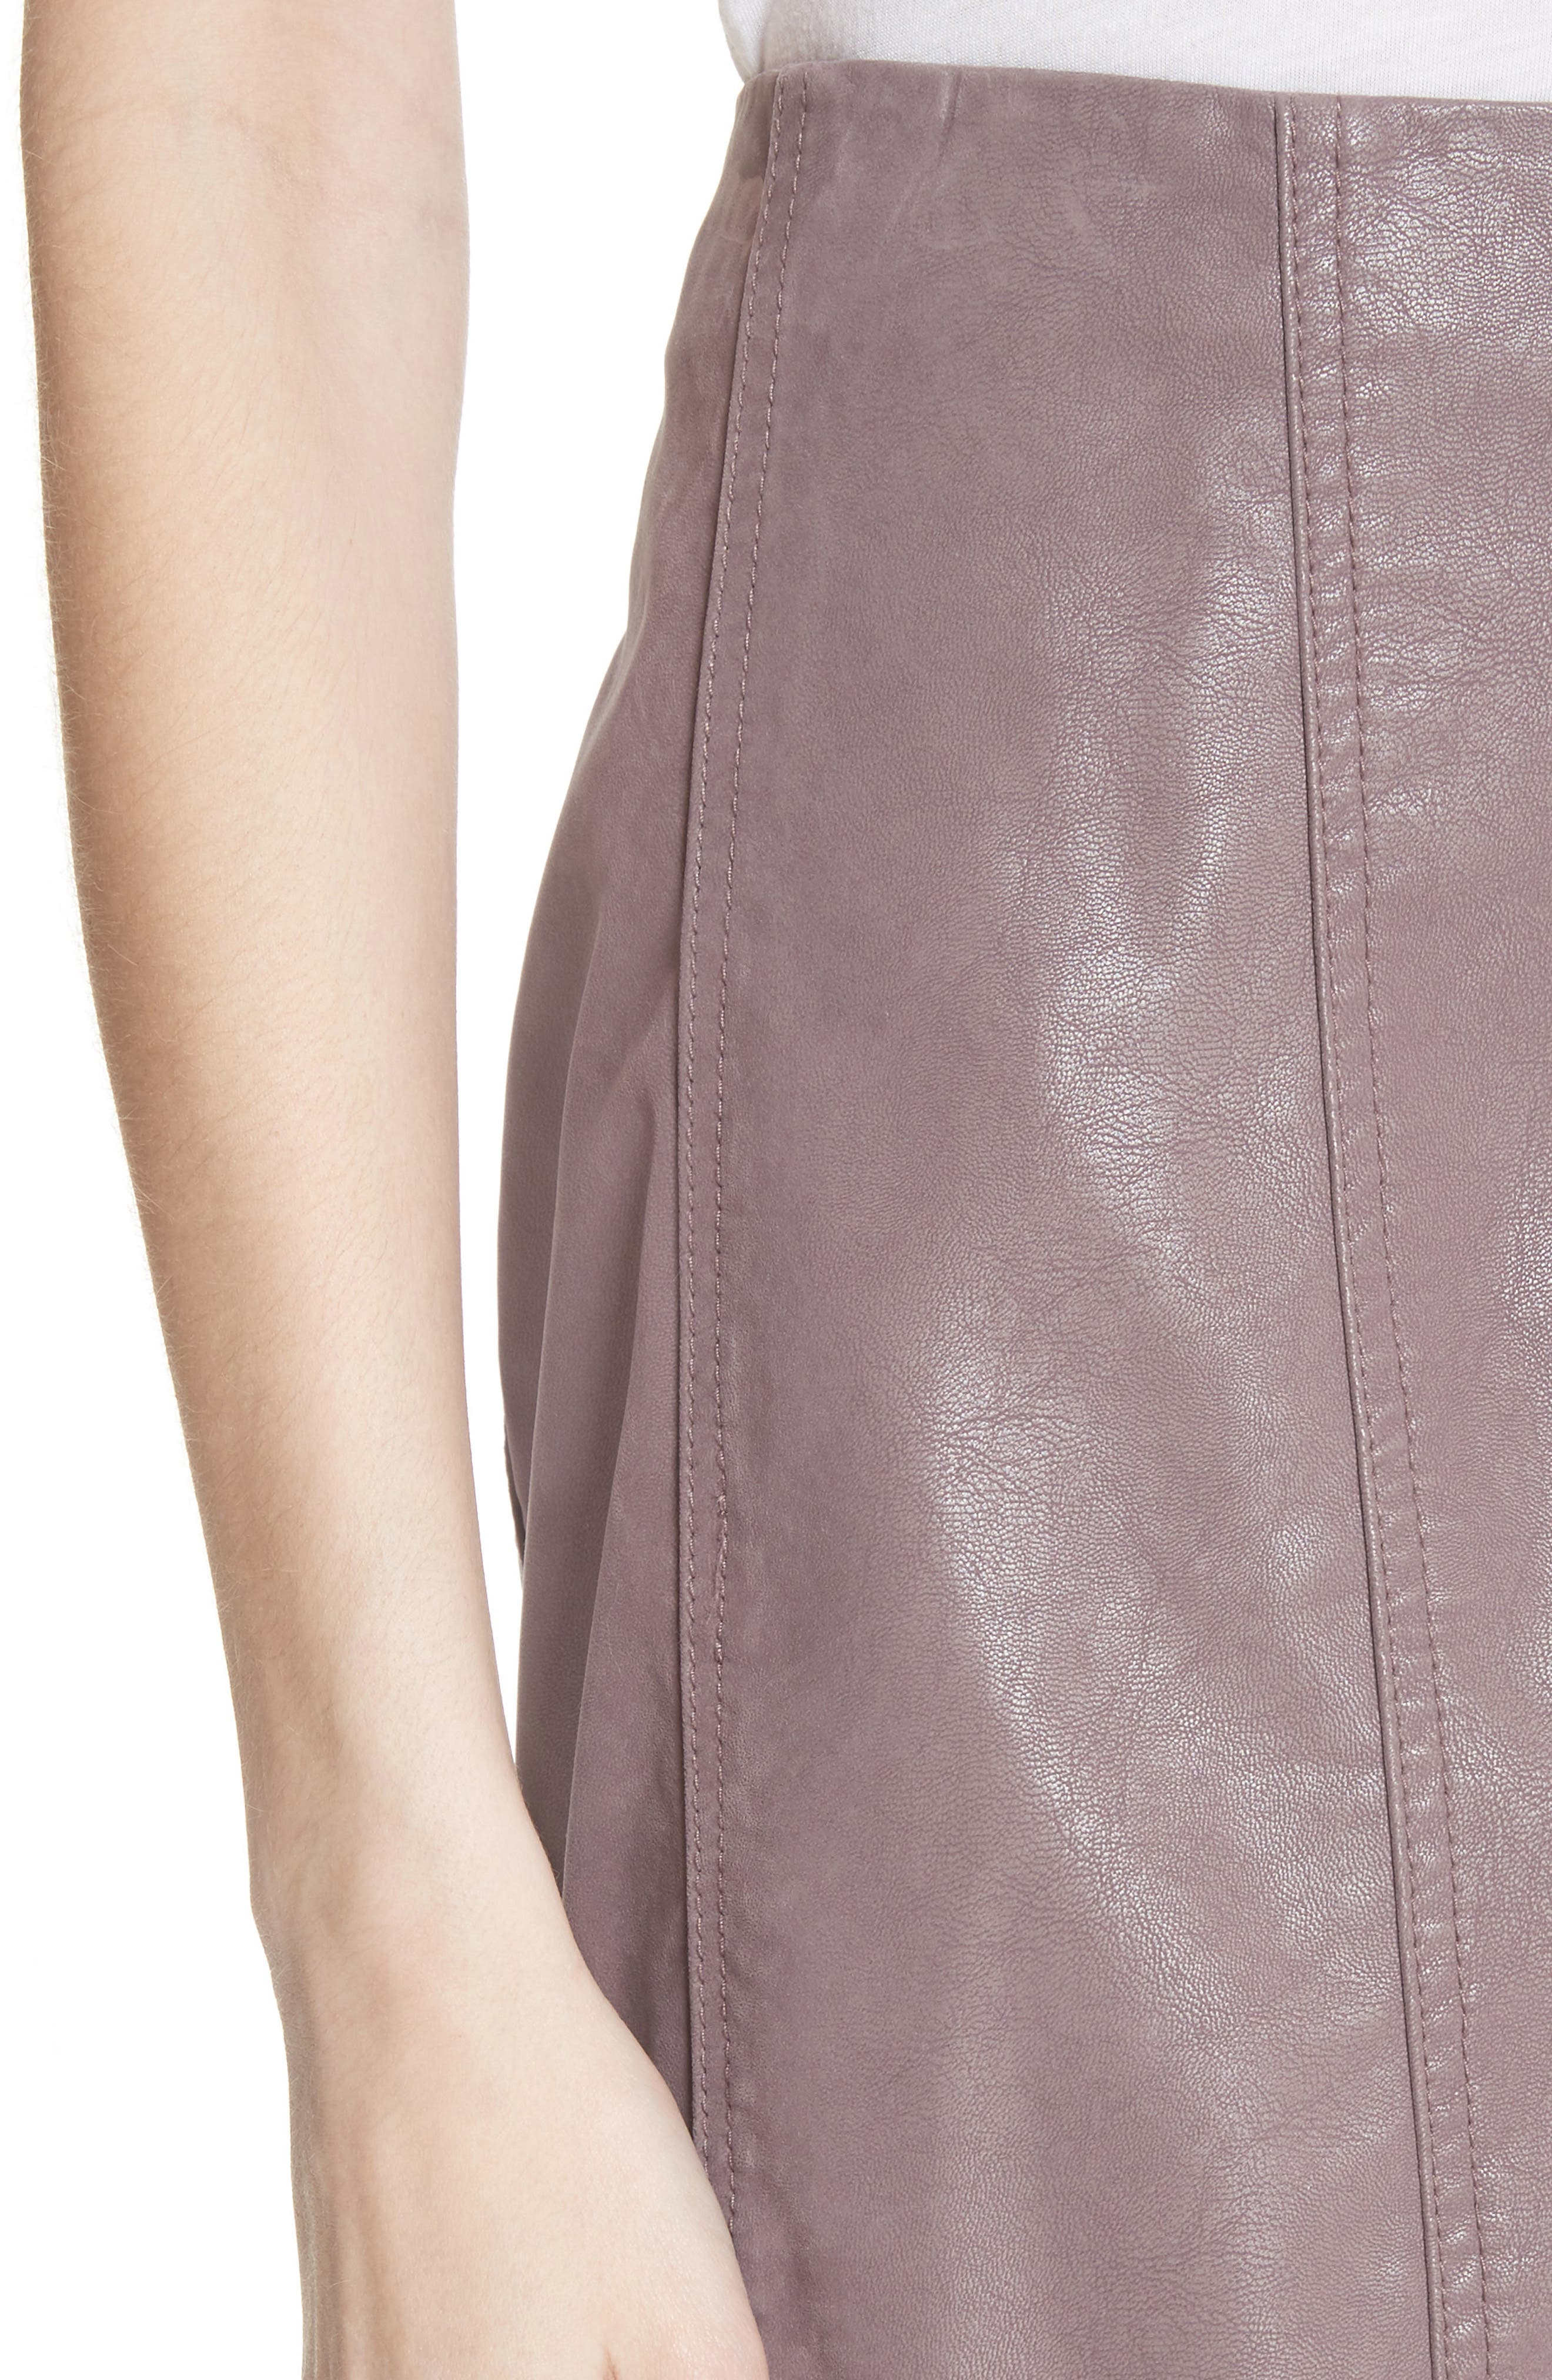 Faux Leather Miniskirt,                             Alternate thumbnail 4, color,                             Mauve